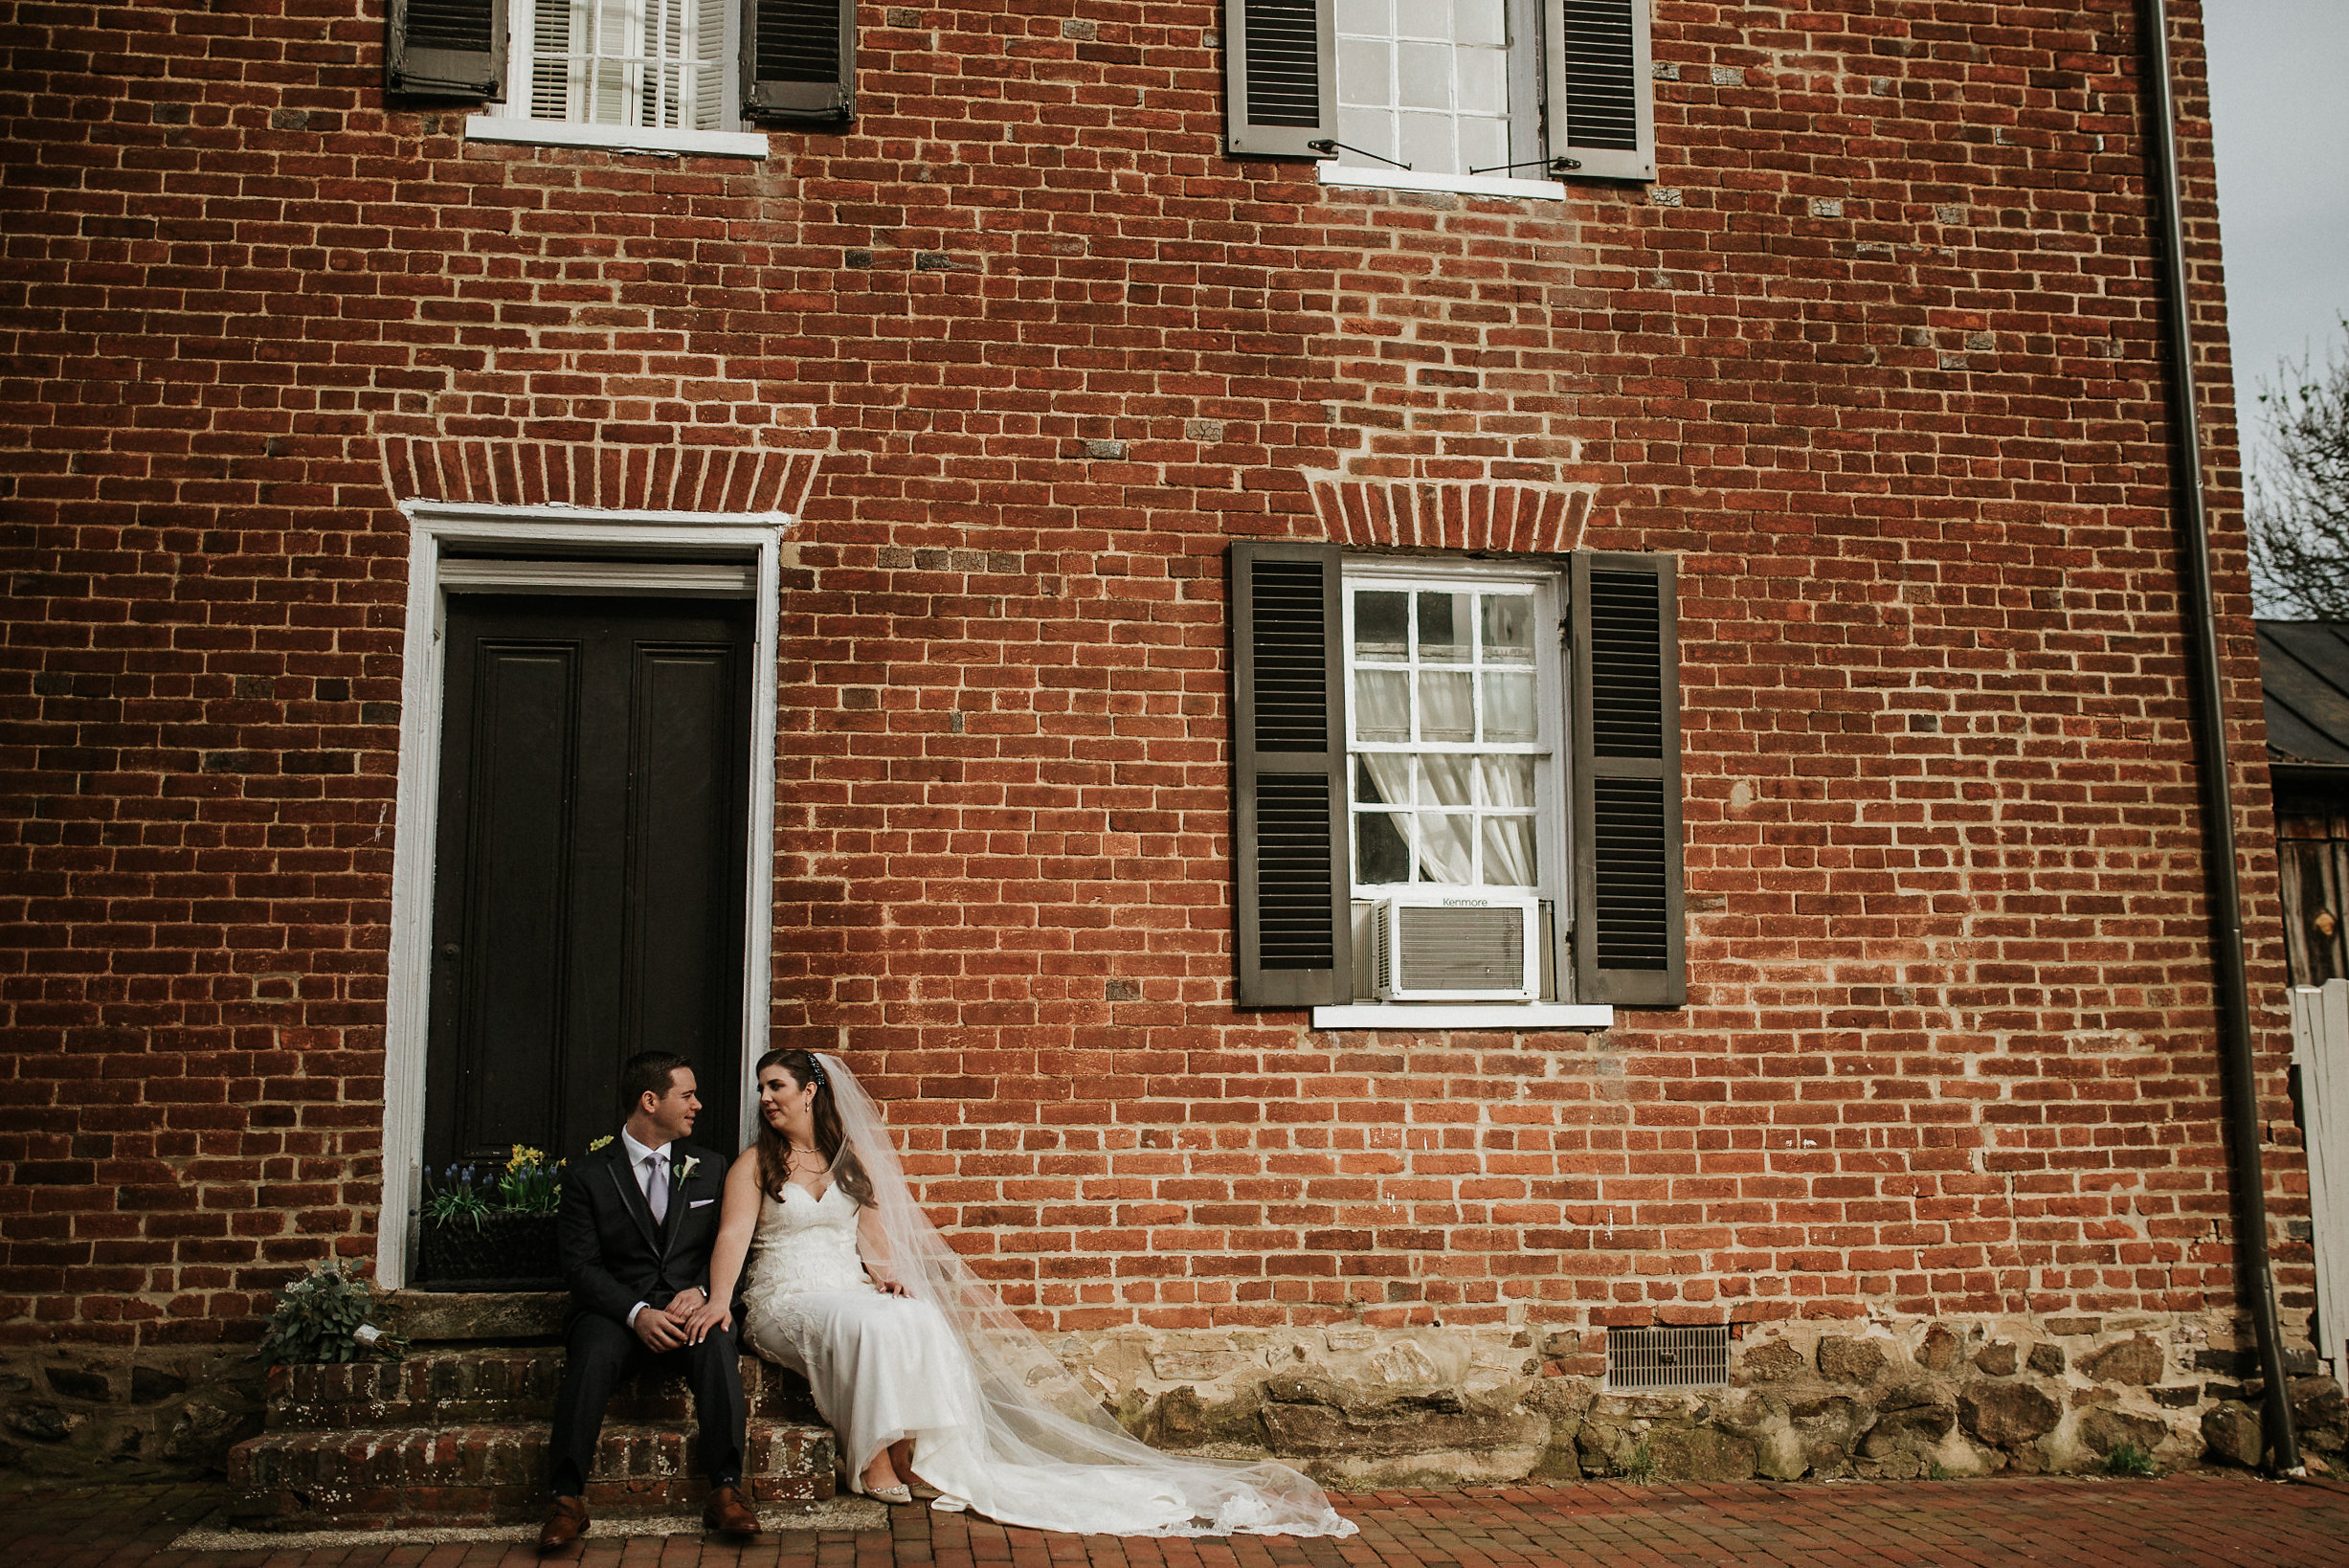 Bride and groom sitting on stoop